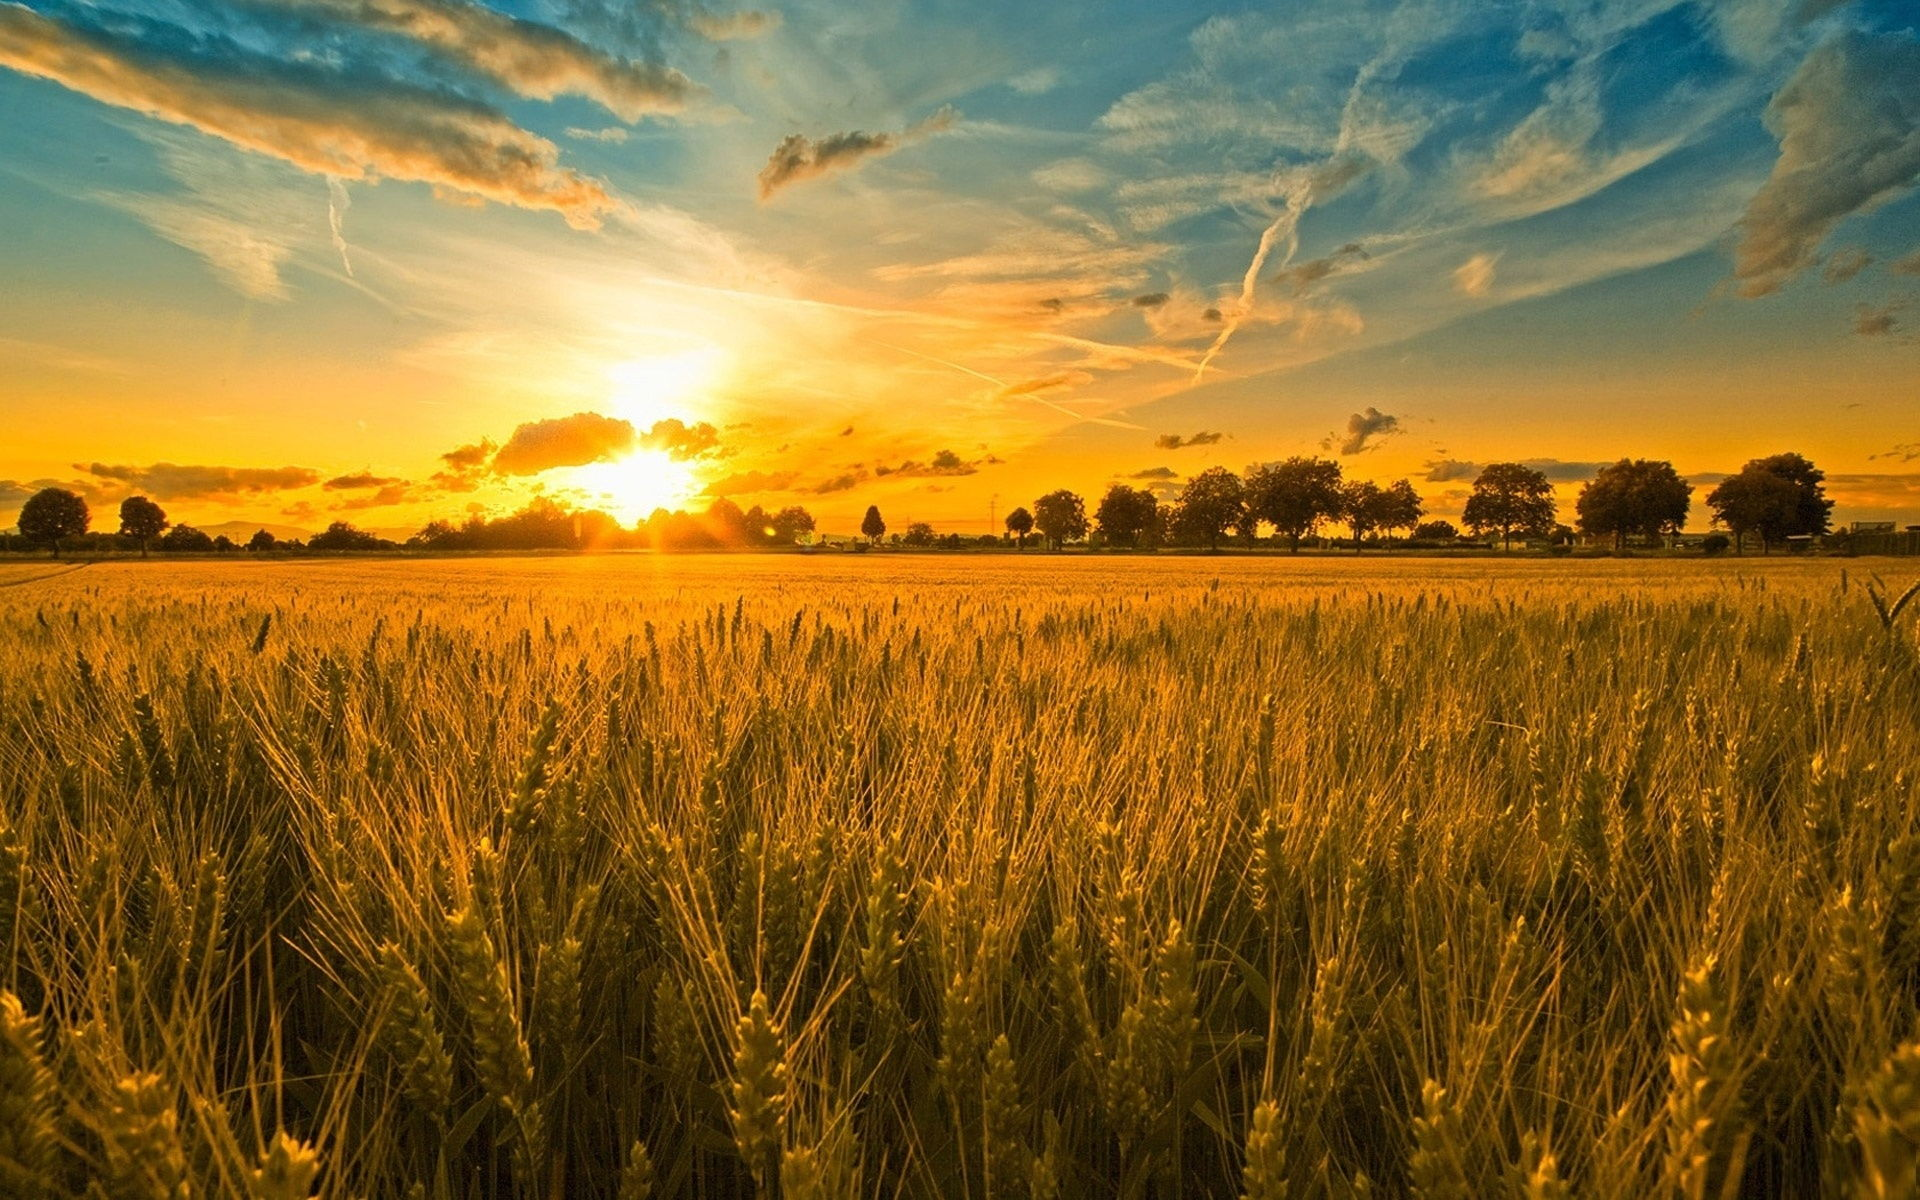 sunset-and-wheat-field-wallpaper-hd-beautiful-desktop-background-hd